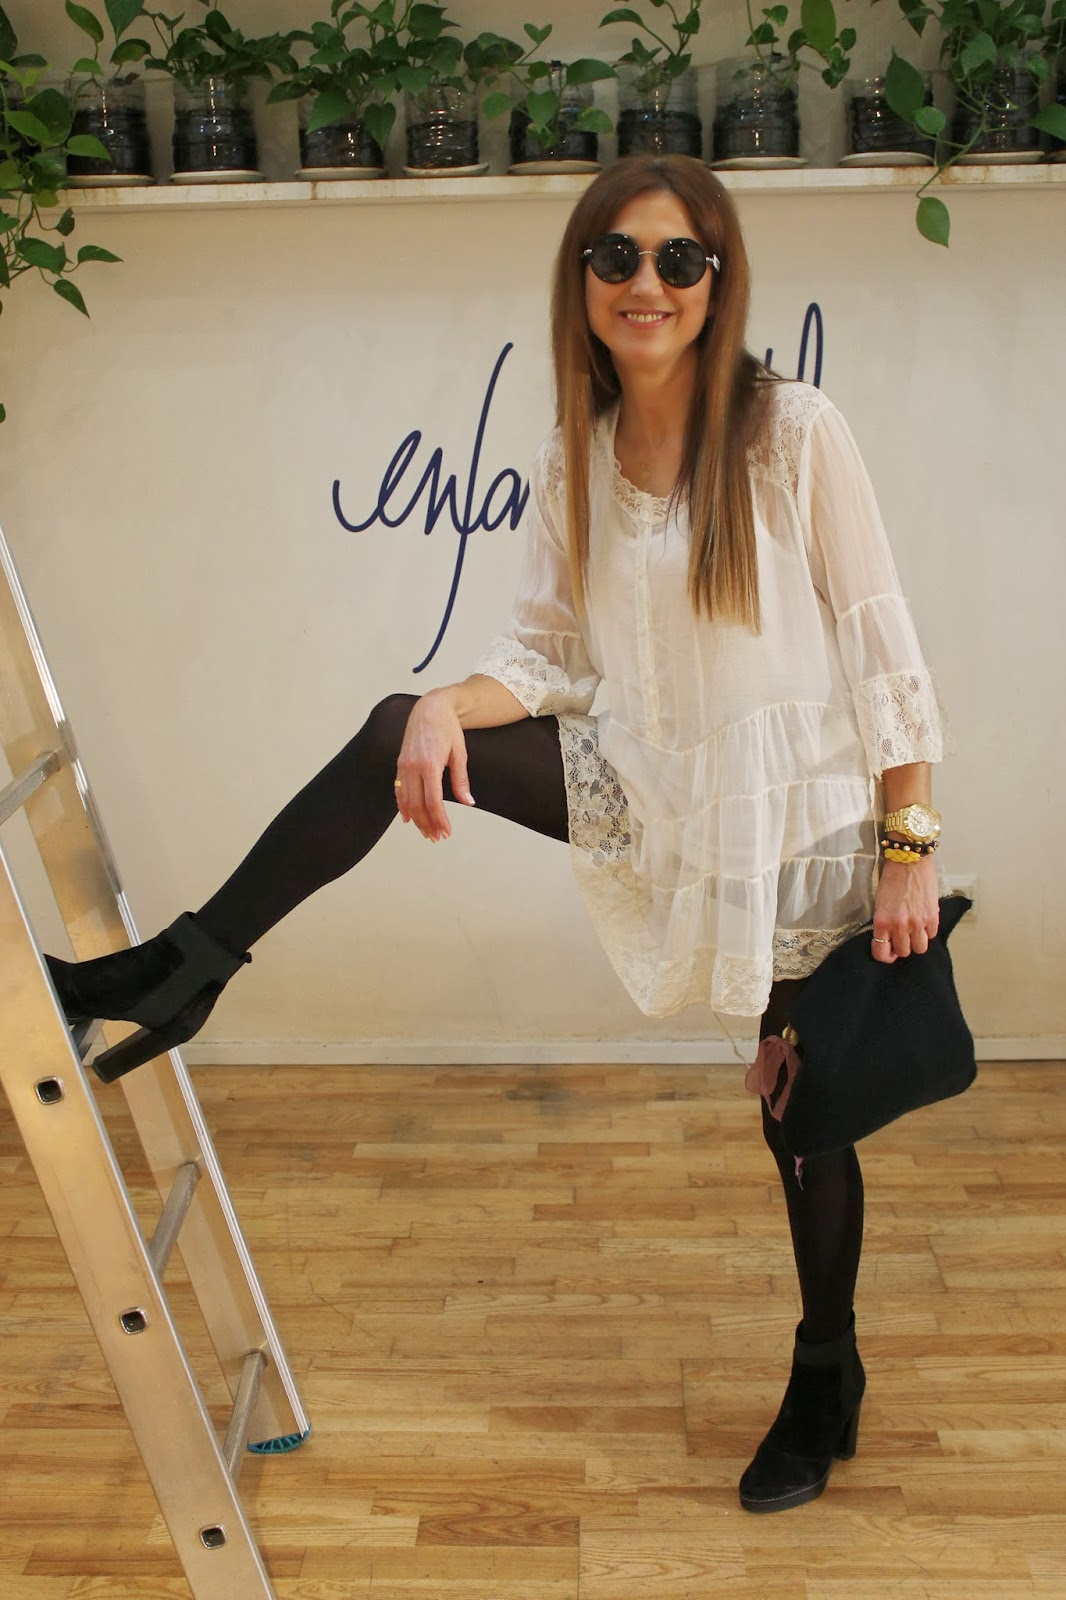 En Enfant Terrible, The Dress Room, Street Style, Moda, Looks, Carmen Hummer